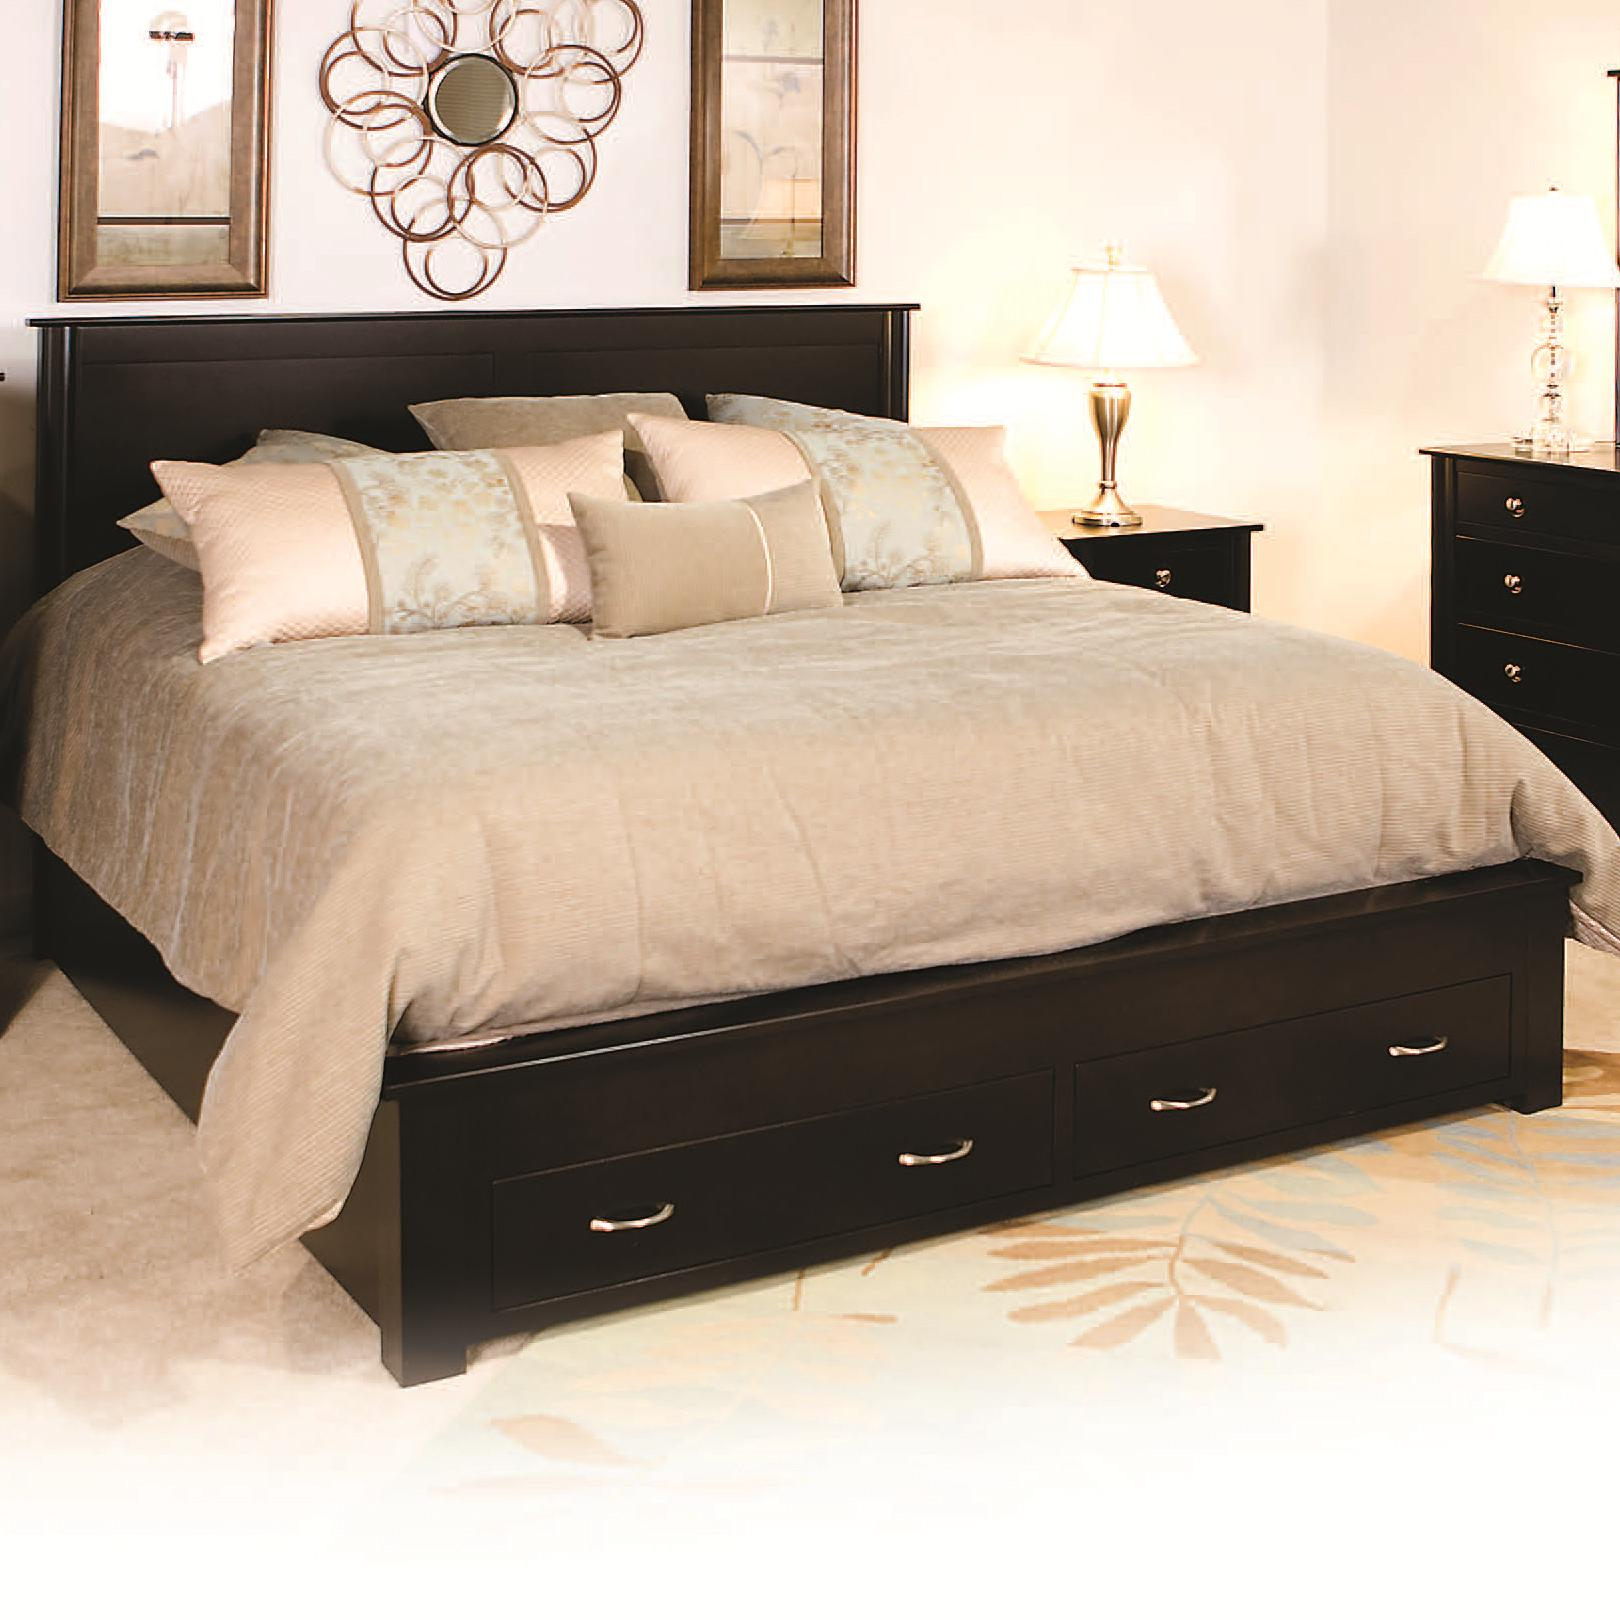 bed frame with drawers daniel s amish cosmopolitan king frame bed with 2 14143